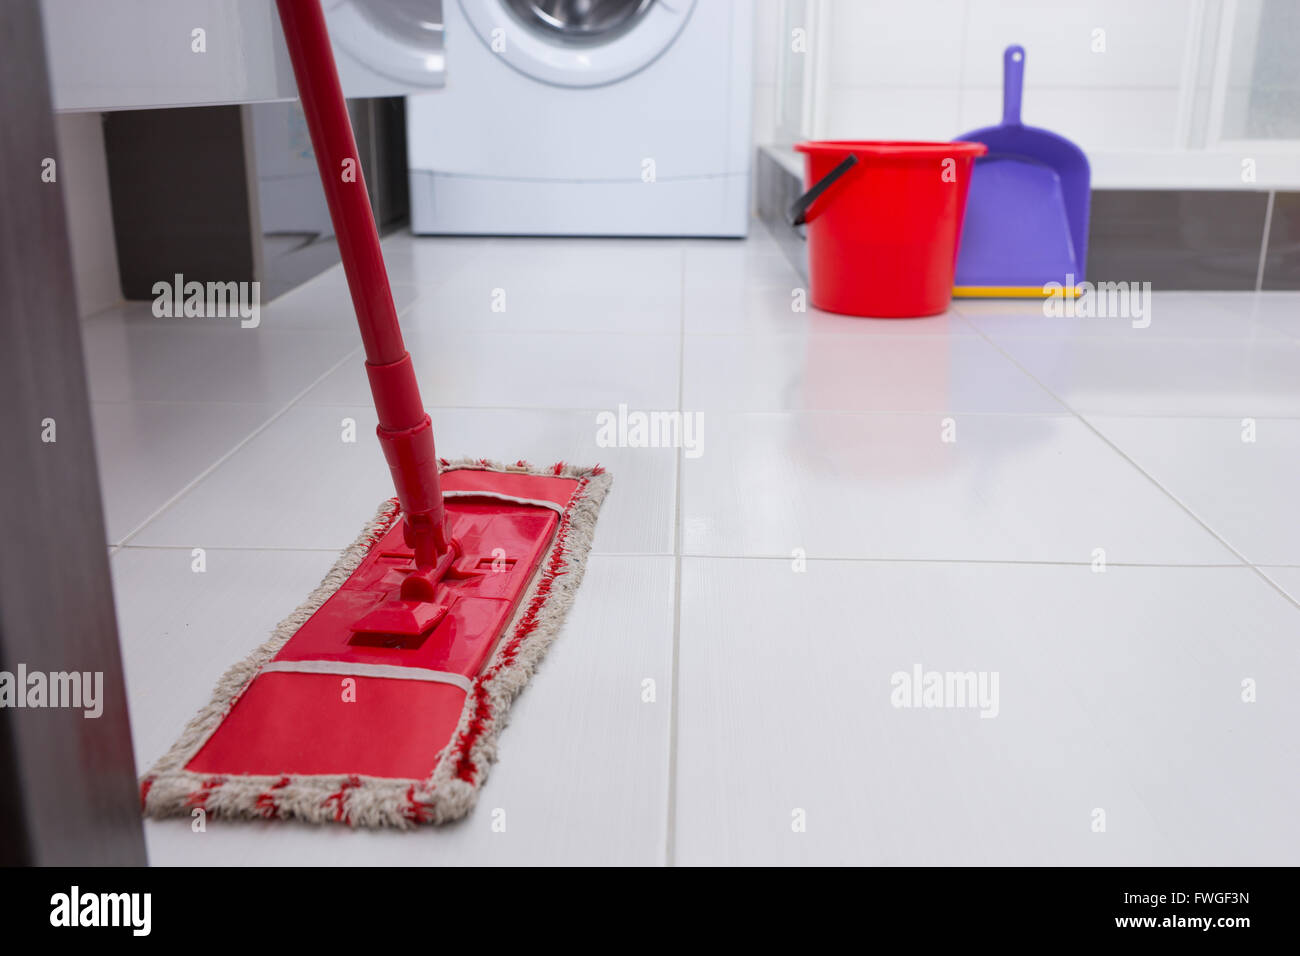 Colorful red mop on a white tiled floor in a bathroom or laundry colorful red mop on a white tiled floor in a bathroom or laundry with a washing machine visible behind low angle close up view dailygadgetfo Images